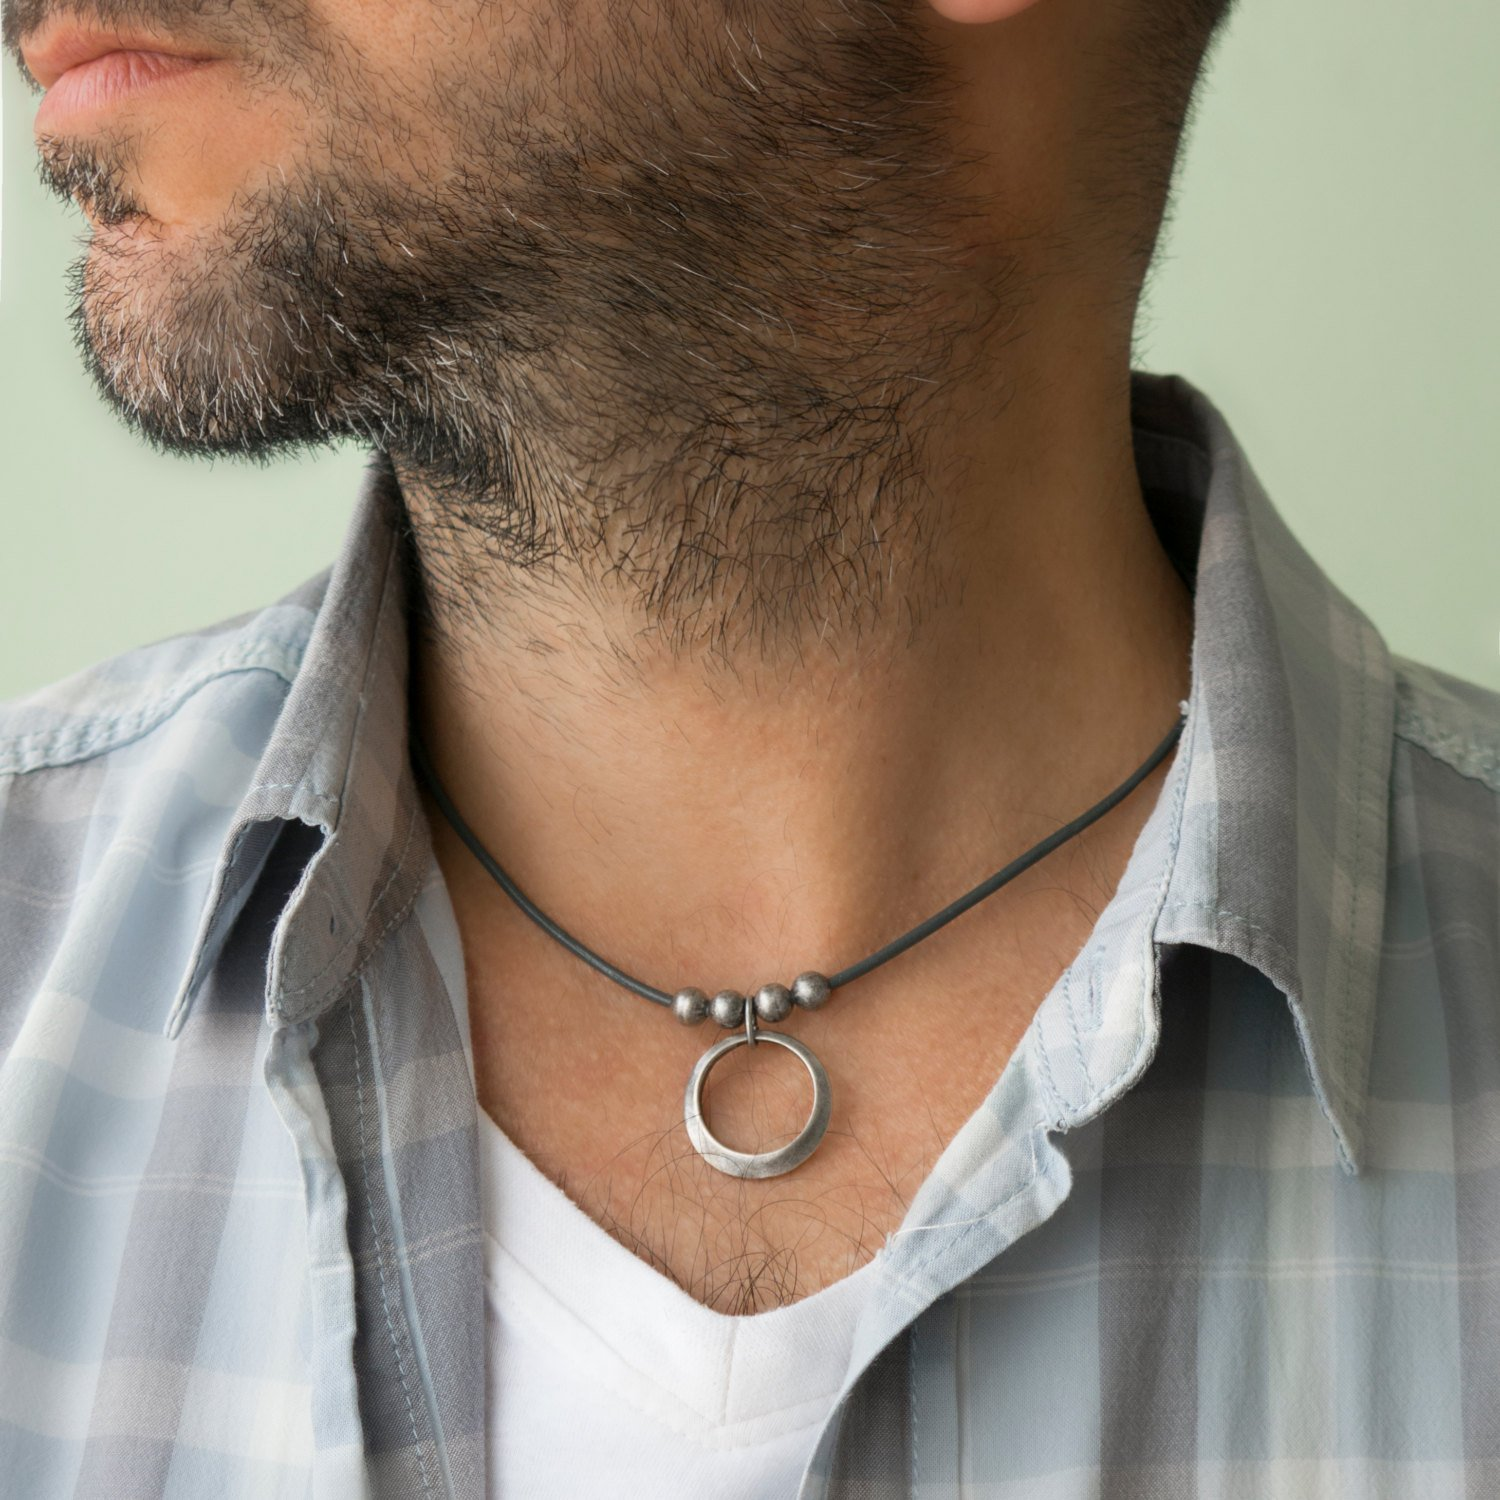 Men's Necklace - Men's Choker Necklace - Men's Leather Necklace - Men's Jewelry - Guys Jewelry - Guys Necklace - Jewelry For Men - Necklace For Men - Male Jewelry - Male Necklace